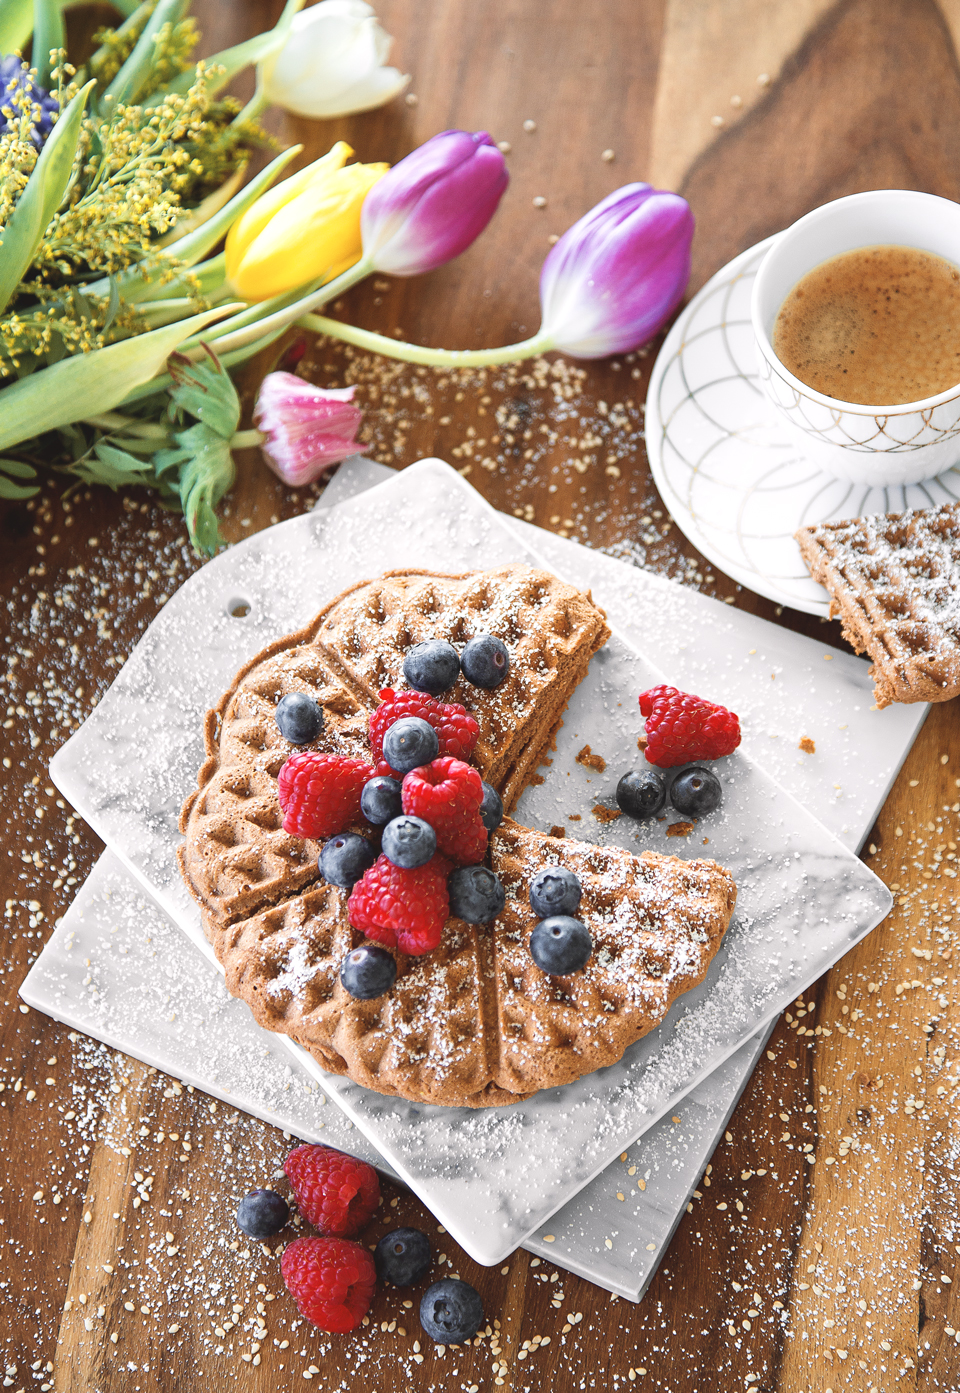 low carb waffeln bea la panthere i fitness lifestyle blog aus m nchen. Black Bedroom Furniture Sets. Home Design Ideas